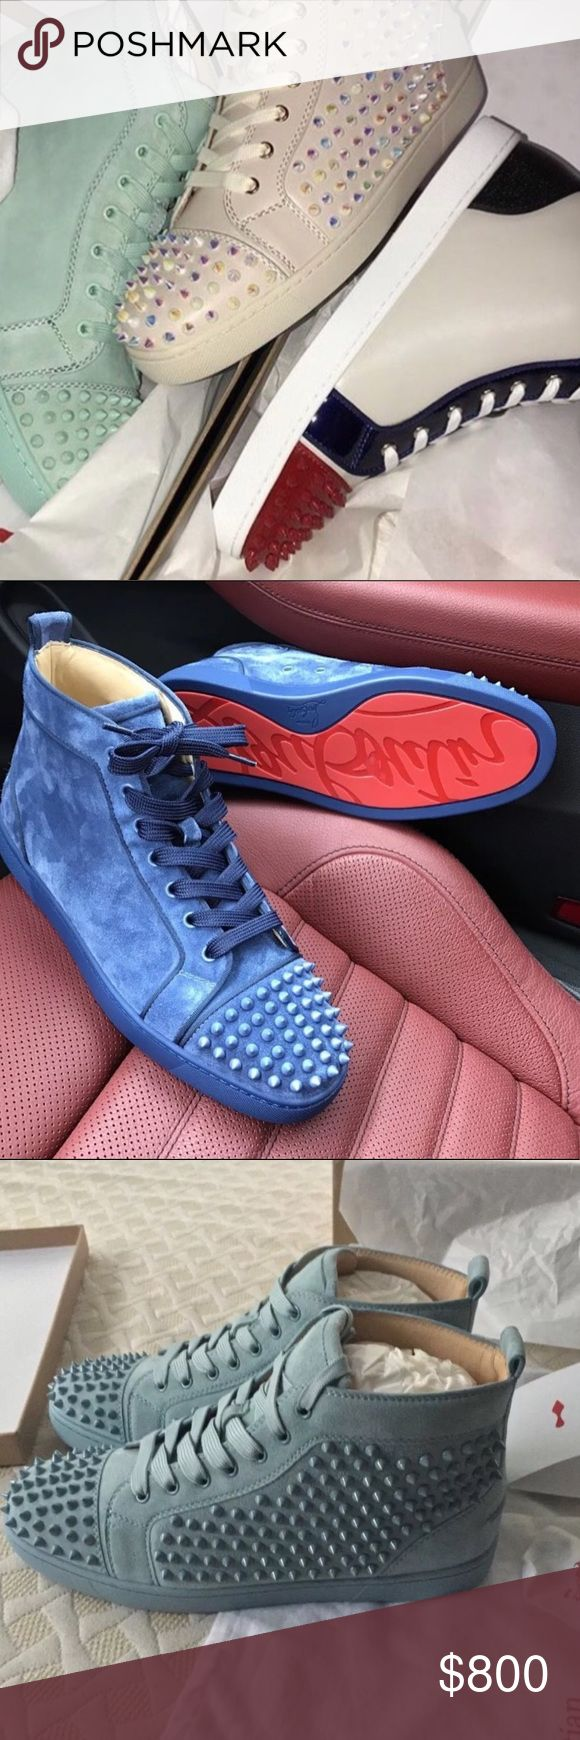 Authentic Christian Louboutin Flat Orlato ‼️BRAND NEW STYLES IN‼️ ✅ All of our goods are ready to ship! Free 2-3 day with tracking✅ 📲 If you are serious please message the number in the bio or DM for price 📲 ❌DO NOT WAIT ON YOUR ORDER! BECAUSE WE MIGHT NOT HAVE THE SAME STYLES/SIZES WITHIN DAYS! ❌ 🔌GET IT WHILE YOU CAN🔌  💵 PAYPAL-WU-GOOGLE WALLET 💯 ONLY HMU IF YOU READY TO ORDER 📲 770.467.2974 or email lavishapparel123@gmail.com or visit my website http://lavishdesigner.bigcartel.com…